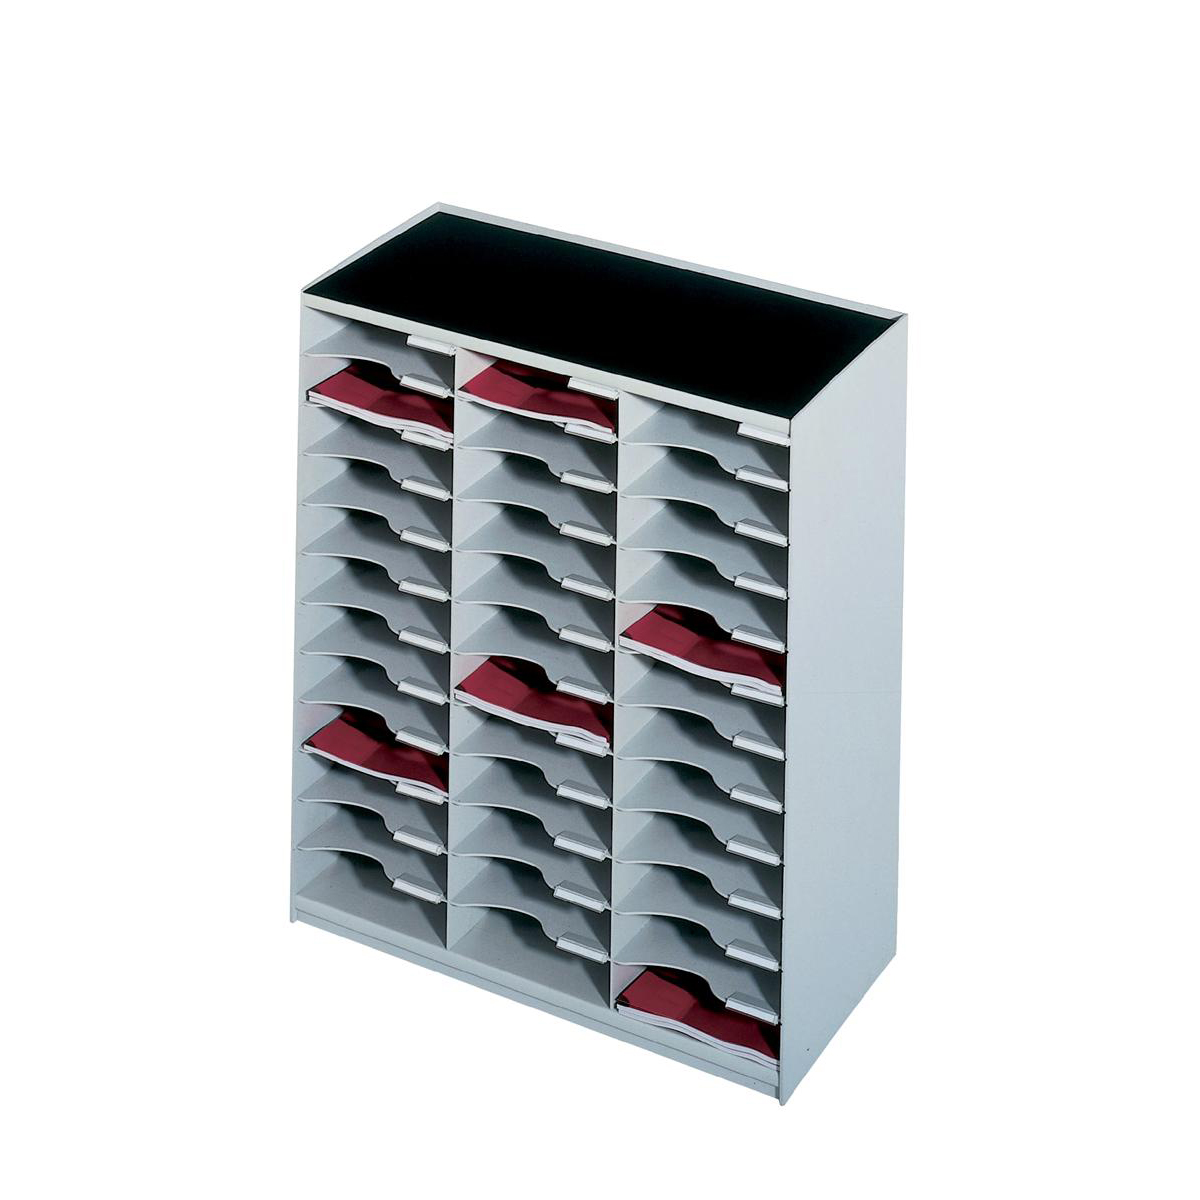 Mail sorters or organizers Paperflow Modulodoc Mailsorter Plastic Stackable 36x A4 Compartments W674xD308xH791mm Grey Ref 80302